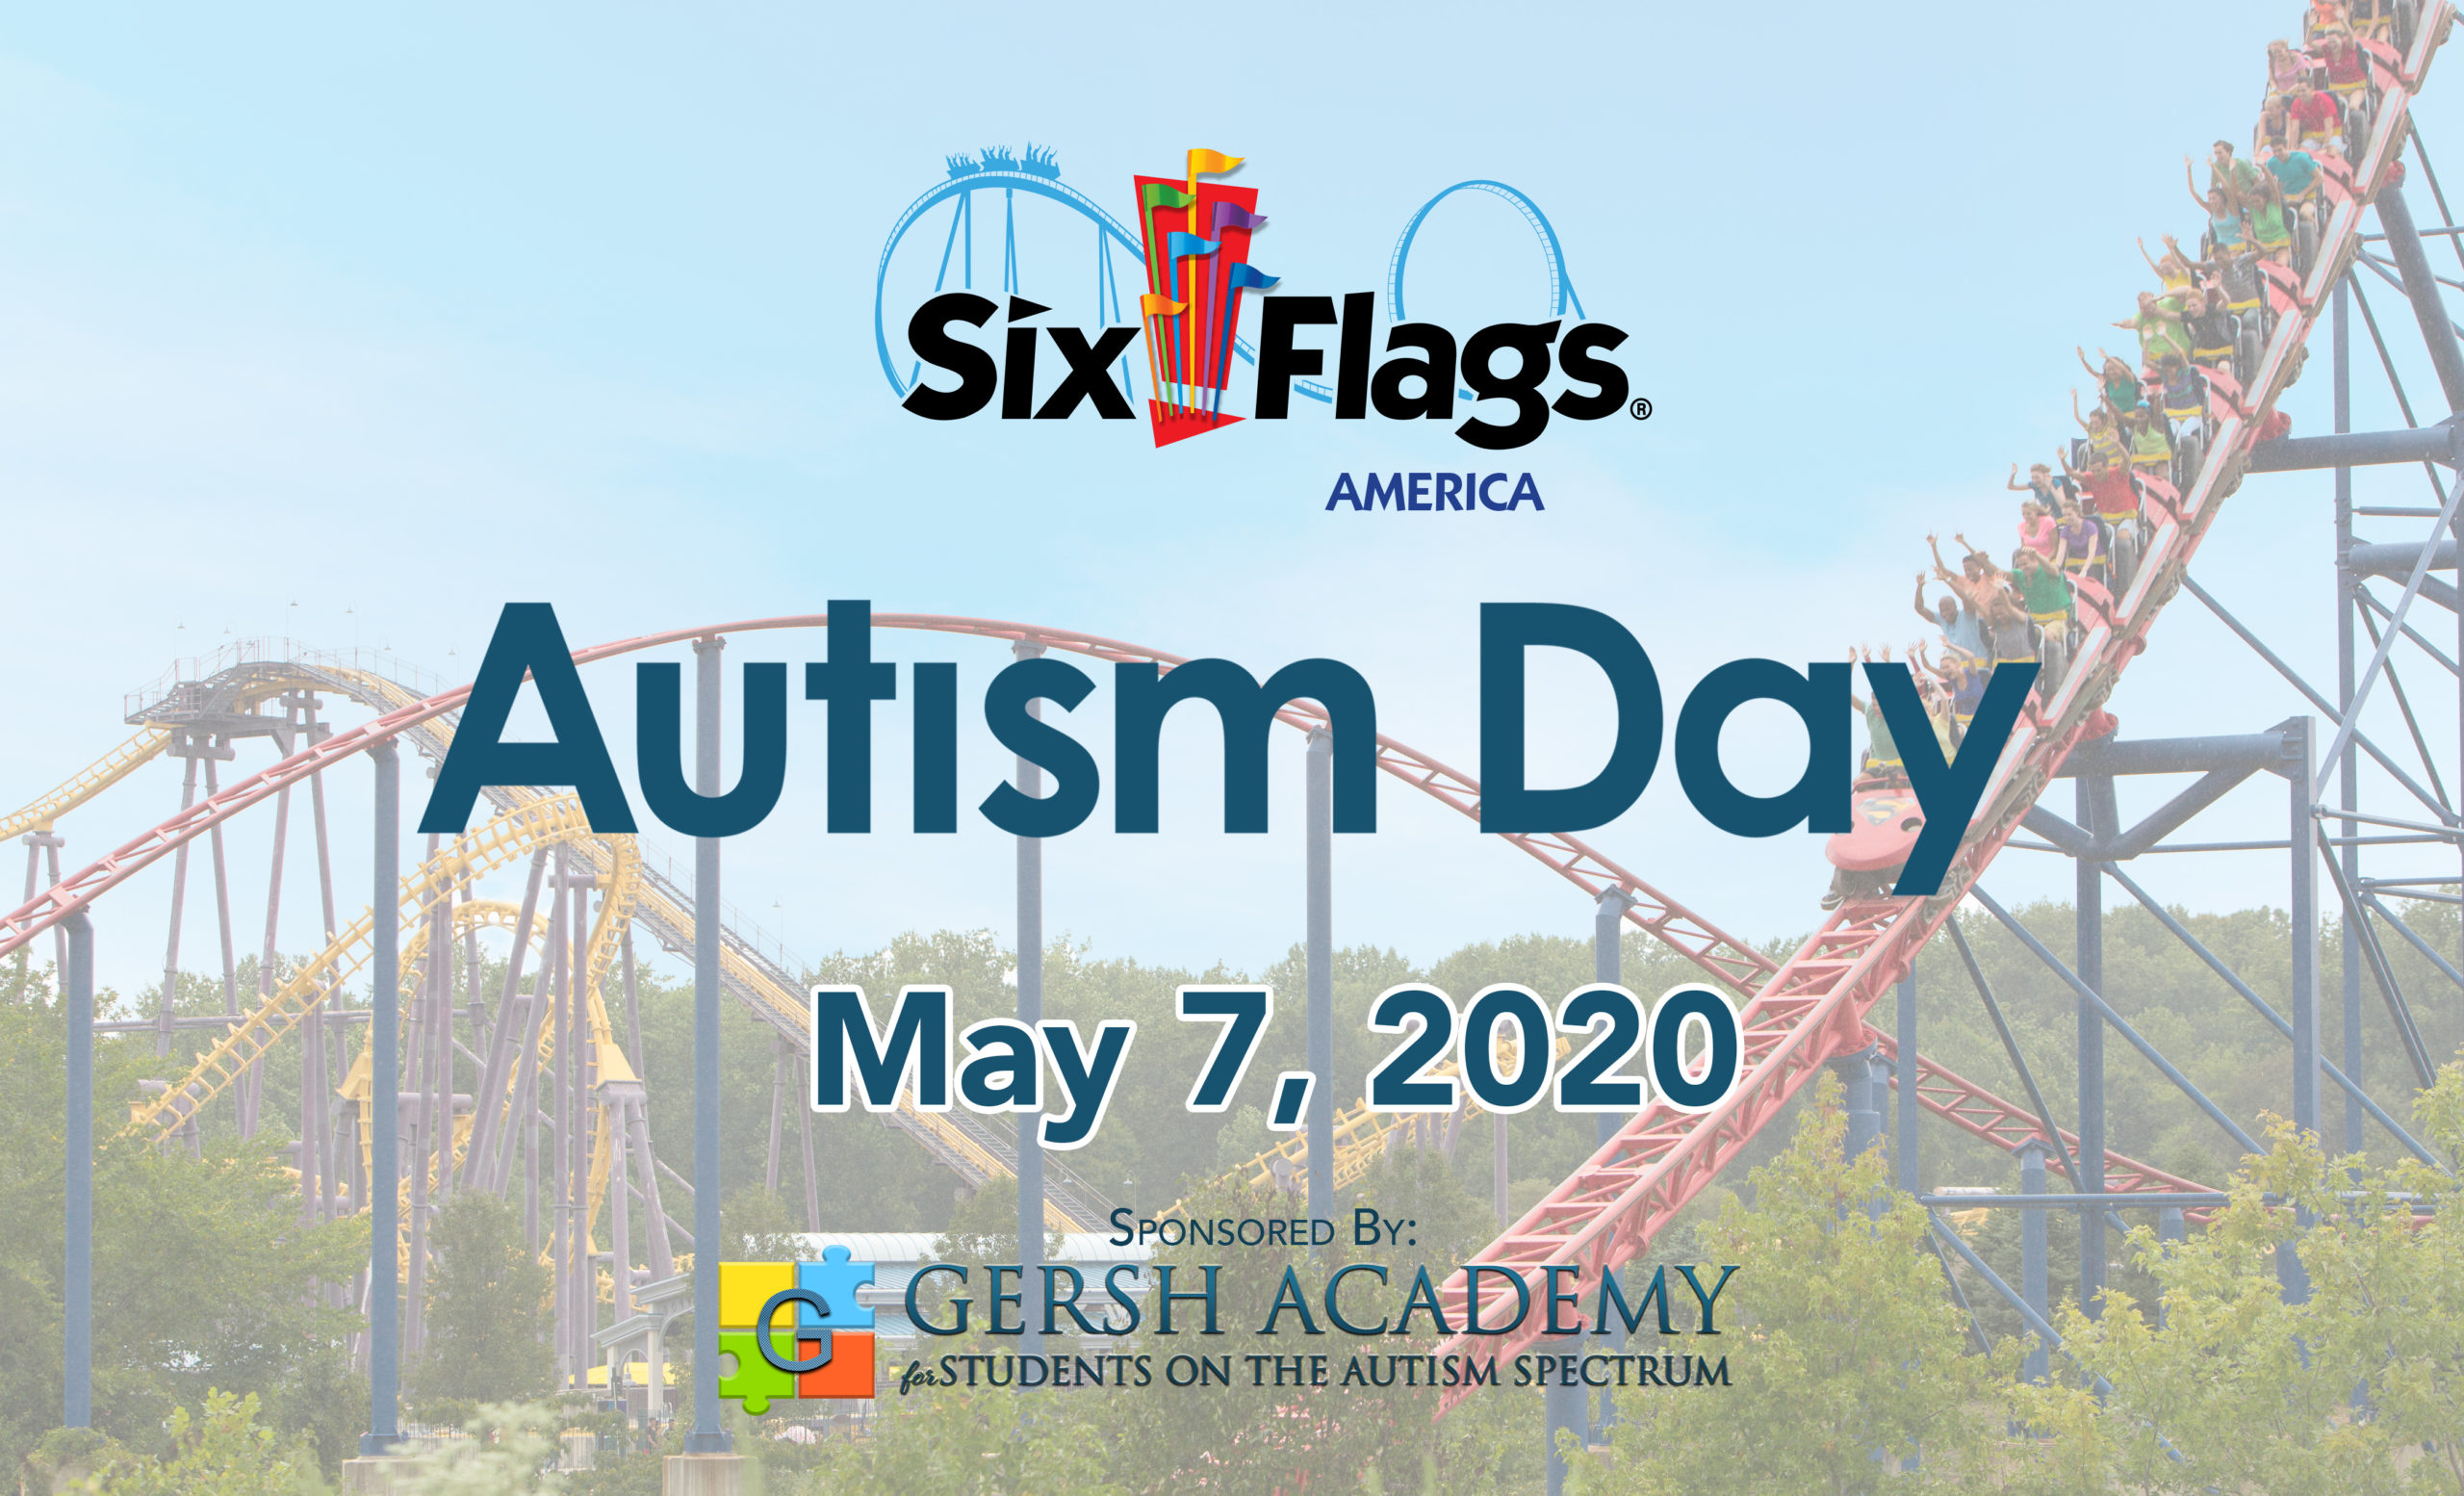 May 7, 2020 – Autism Day at Six Flags America